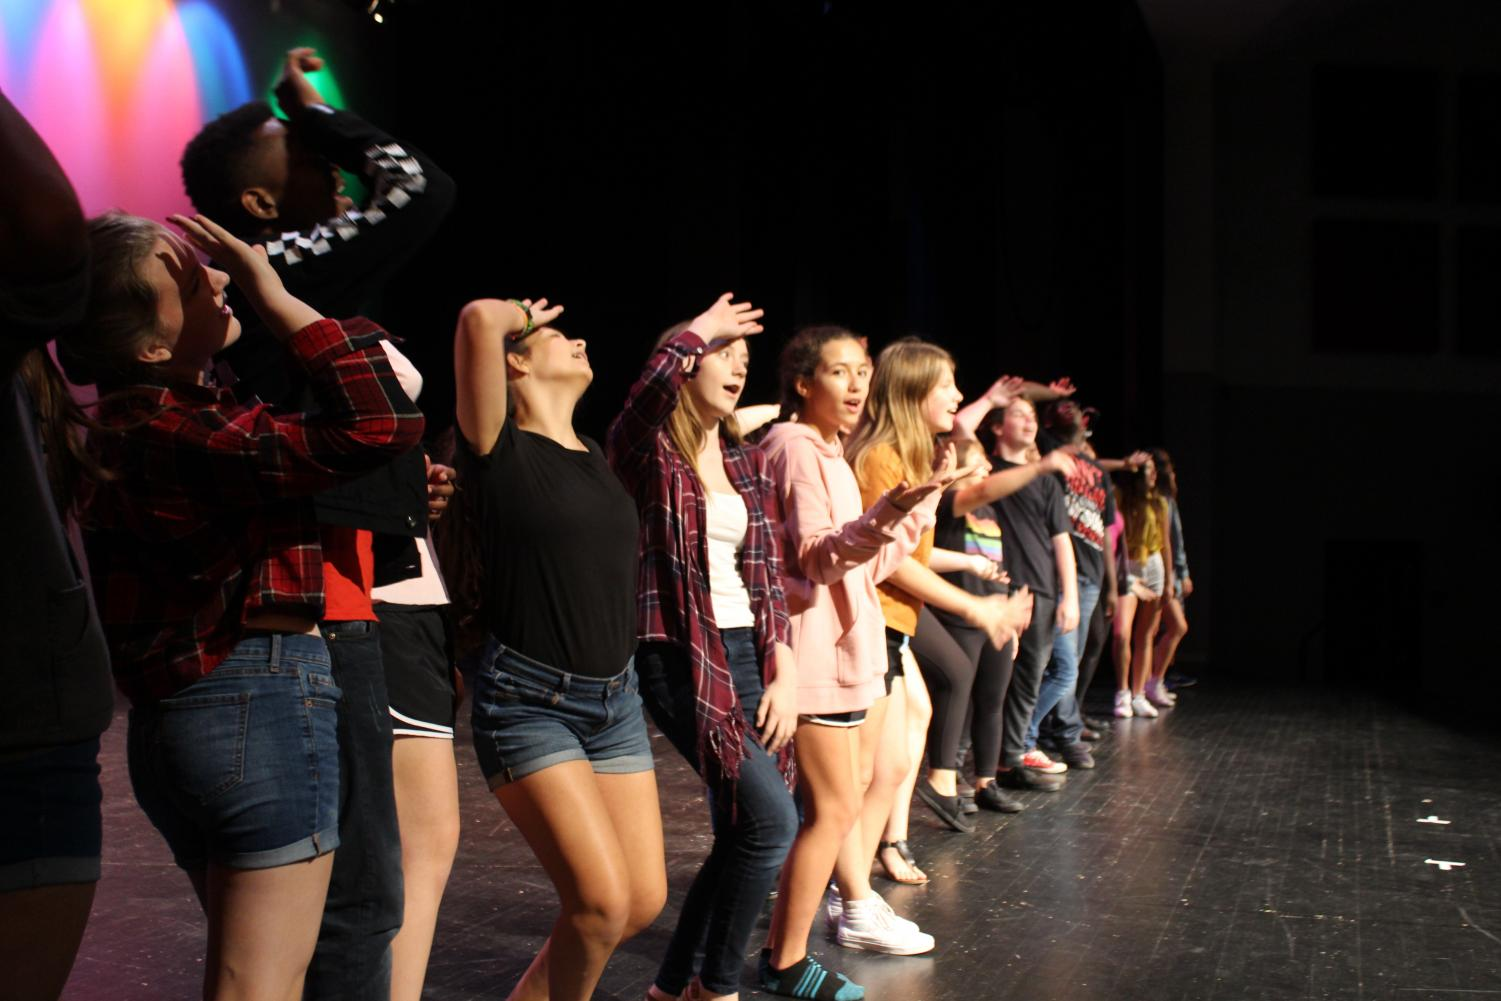 Members of thespian troupe #2660 rehearse for Broadway Knights